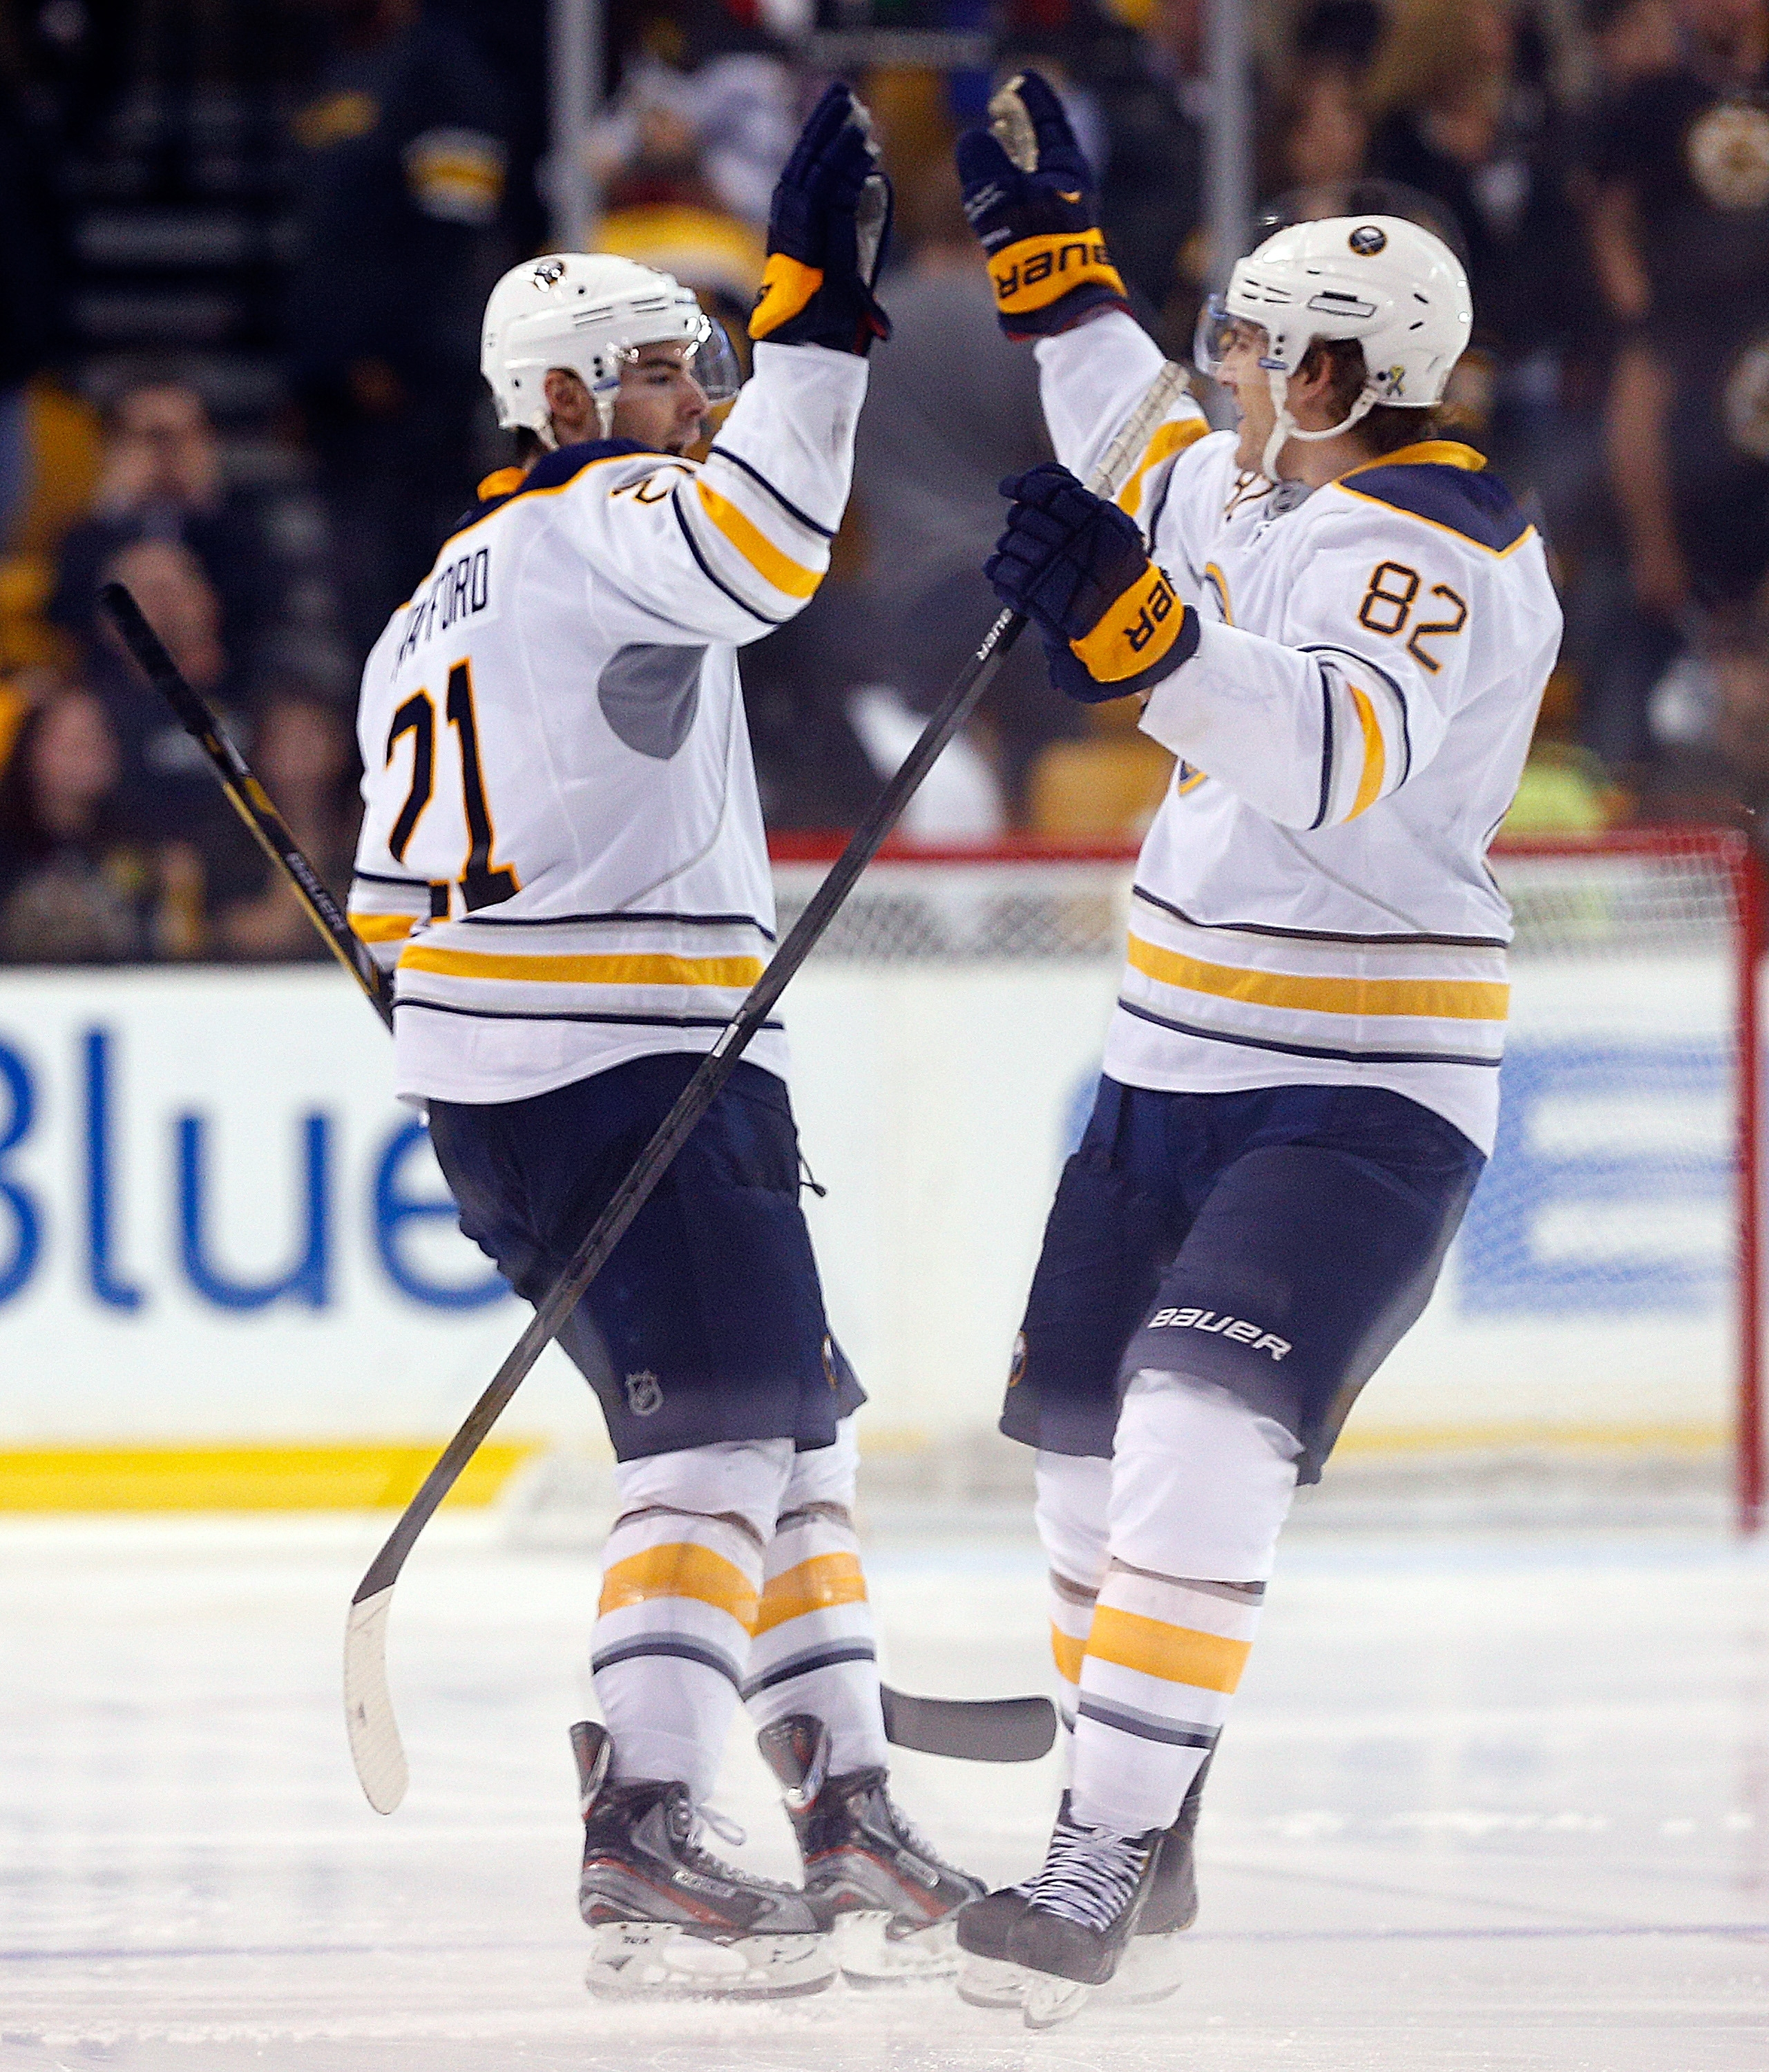 Drew Stafford celebrates with Marcus Foligno after beating Anton Khudobin for the only goal of the shootout.